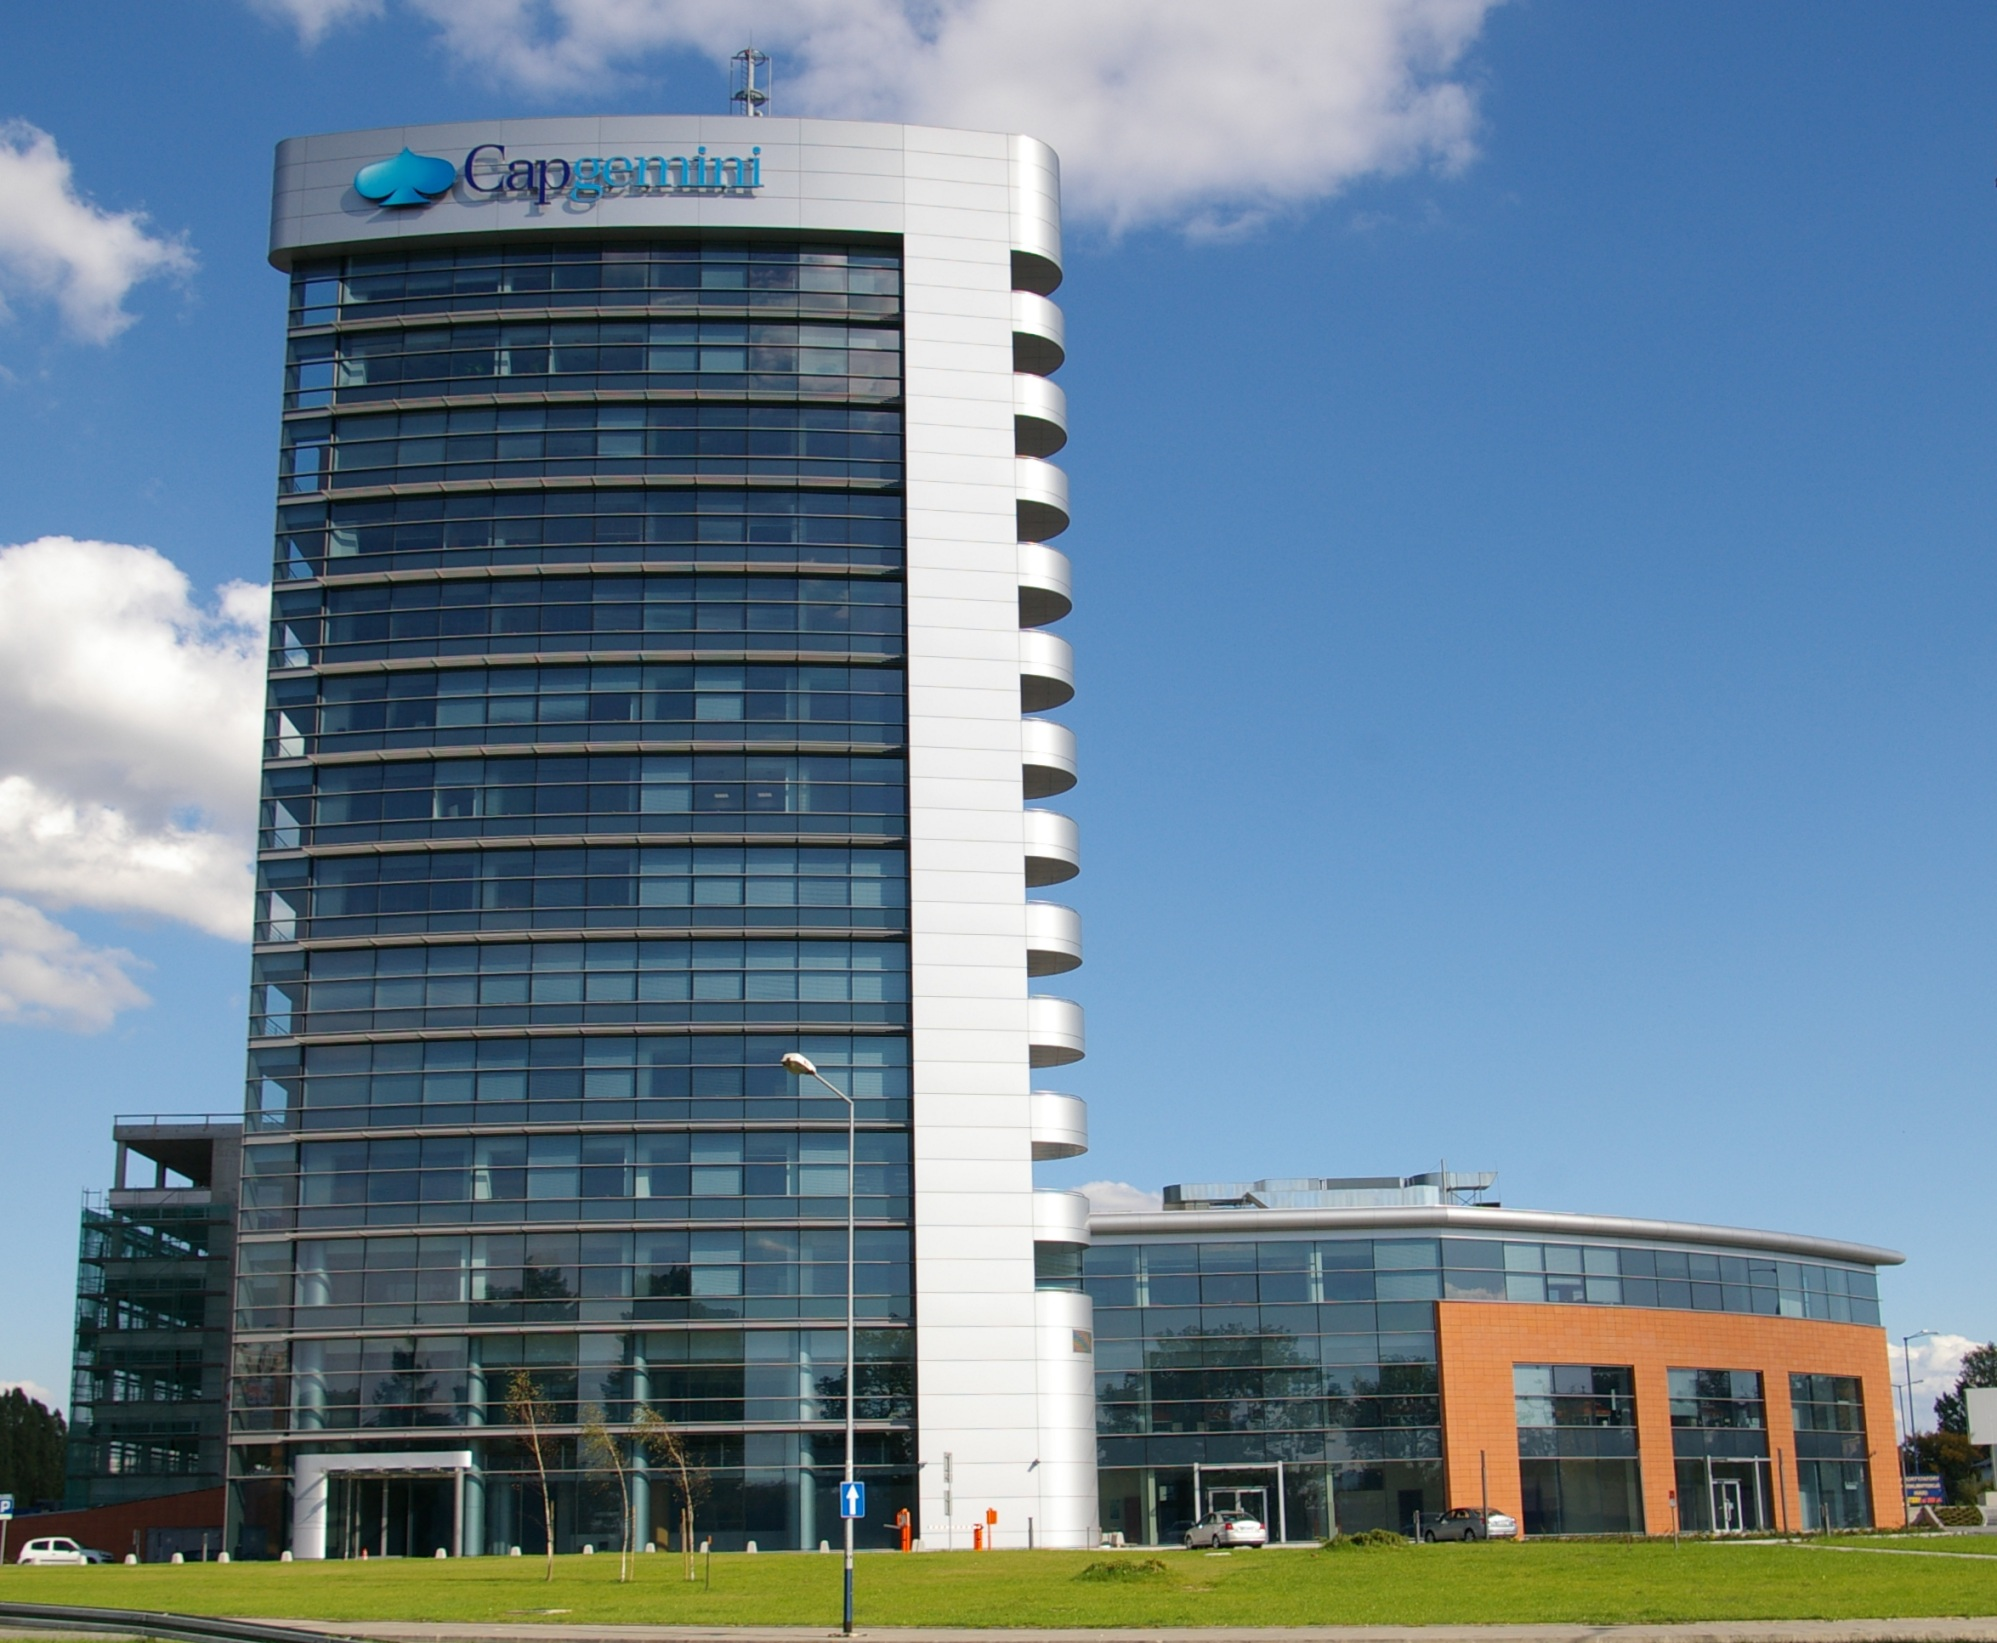 Capgemini Office building